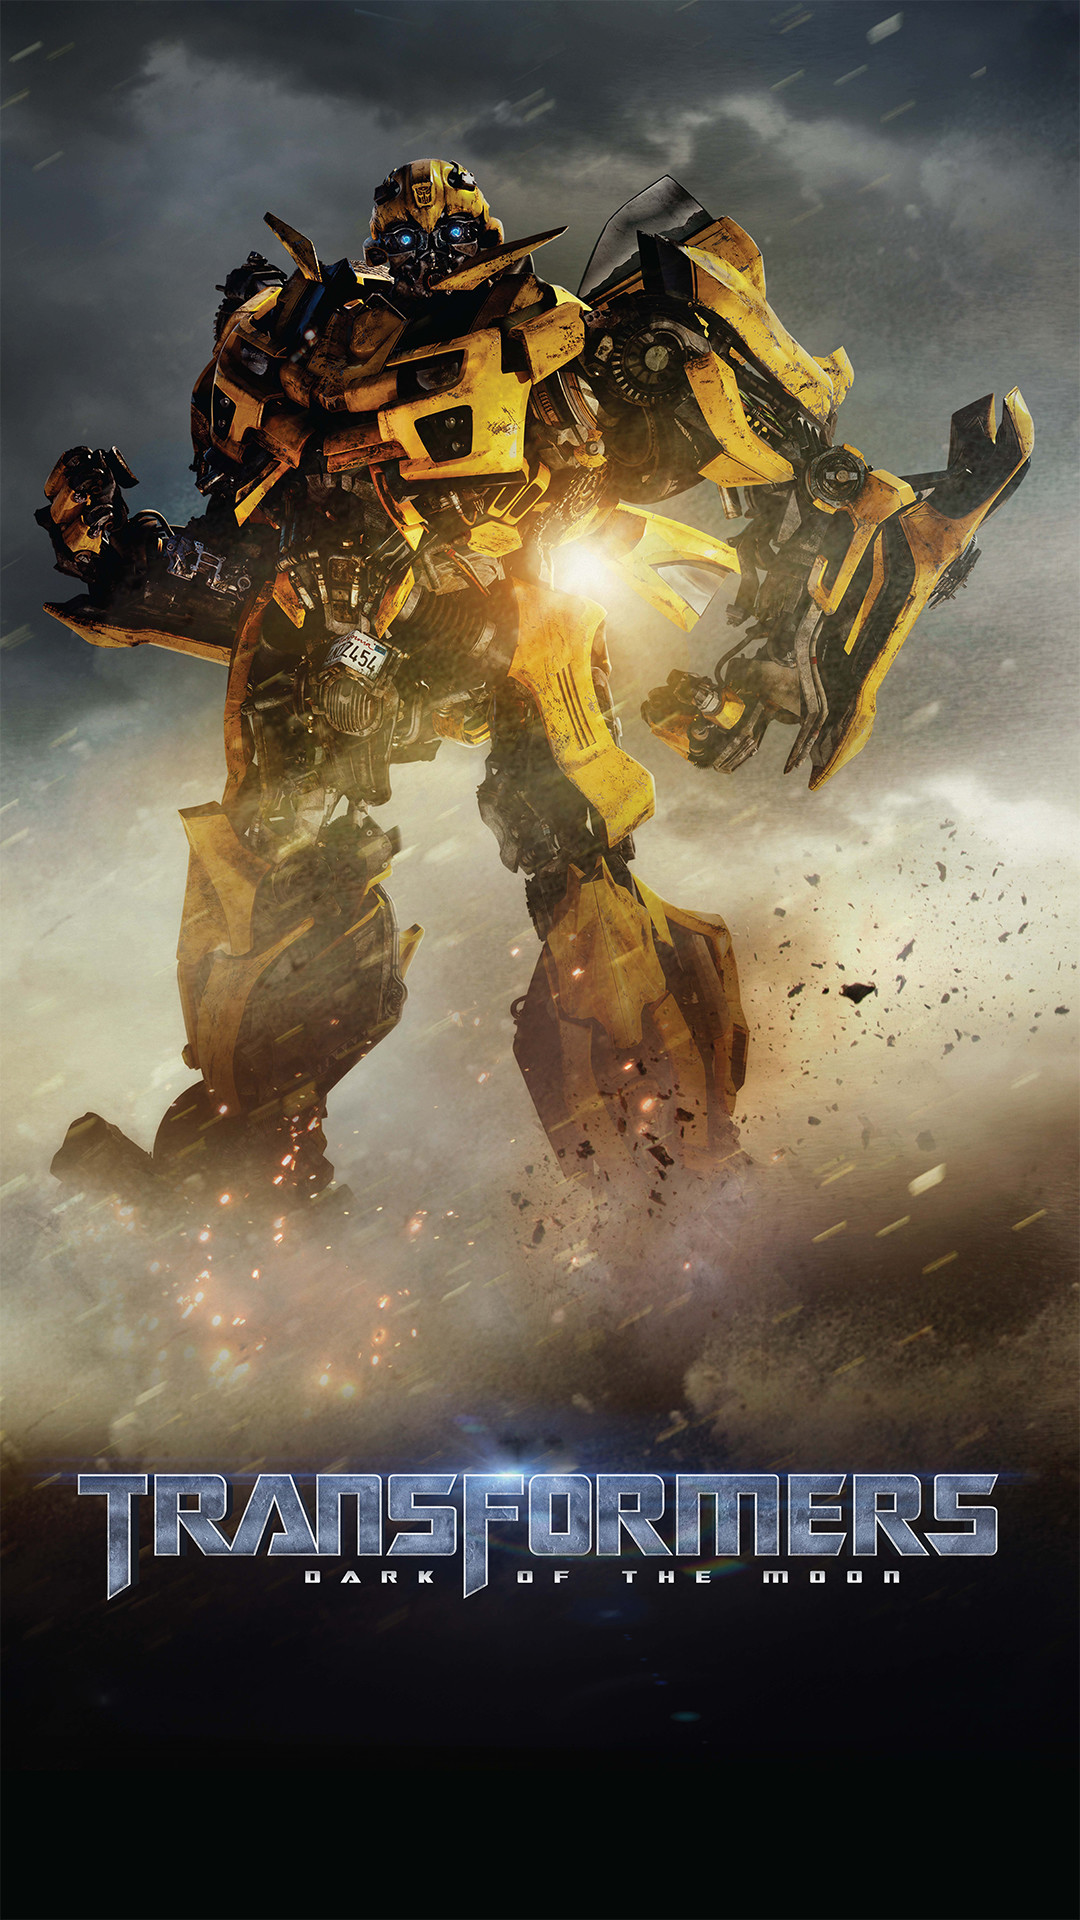 Wallpaper transformers bumblebee 68 images - Wallpapers transformers 4 ...